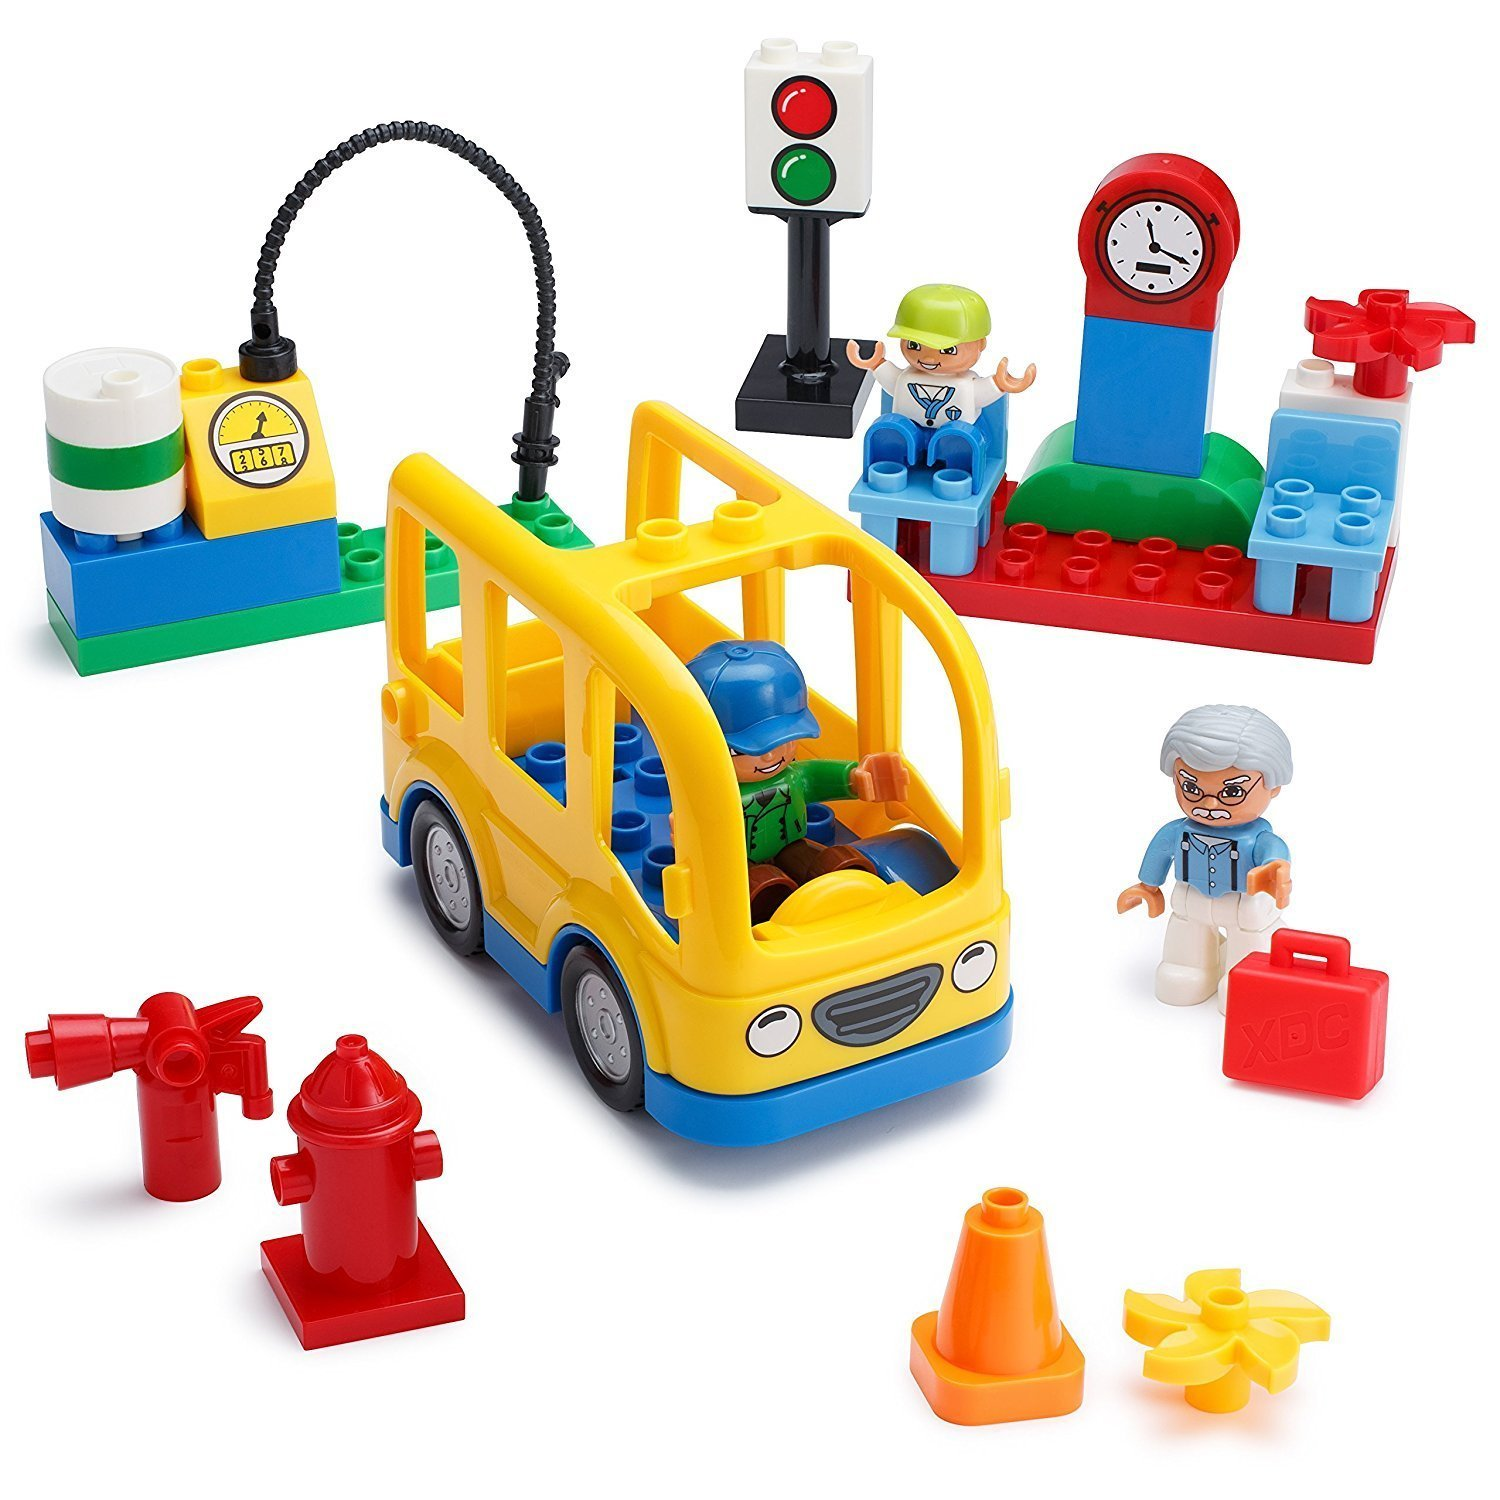 Play Build School Bus Building Blocks Set – 29 Pieces – Includes Vehicle, Bus Stop, Gas Station, Traffic Light, 3 Minifigures & Accessories – Recommended for Boys & Girls Ages 3+